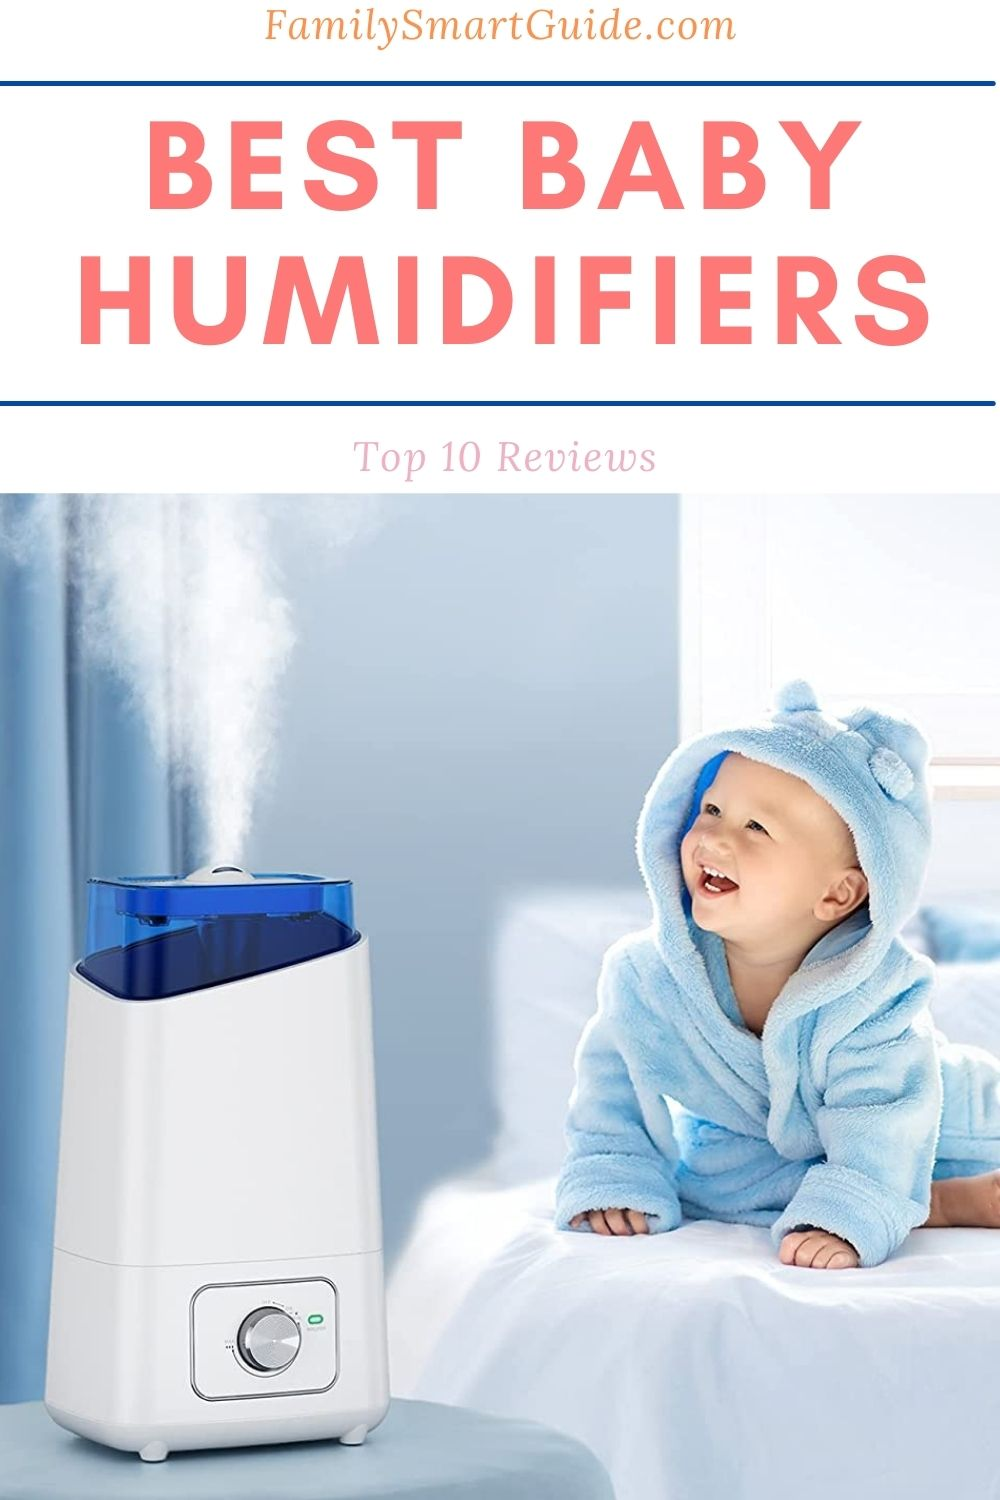 Top 10 Best Baby Humidifiers Reviews